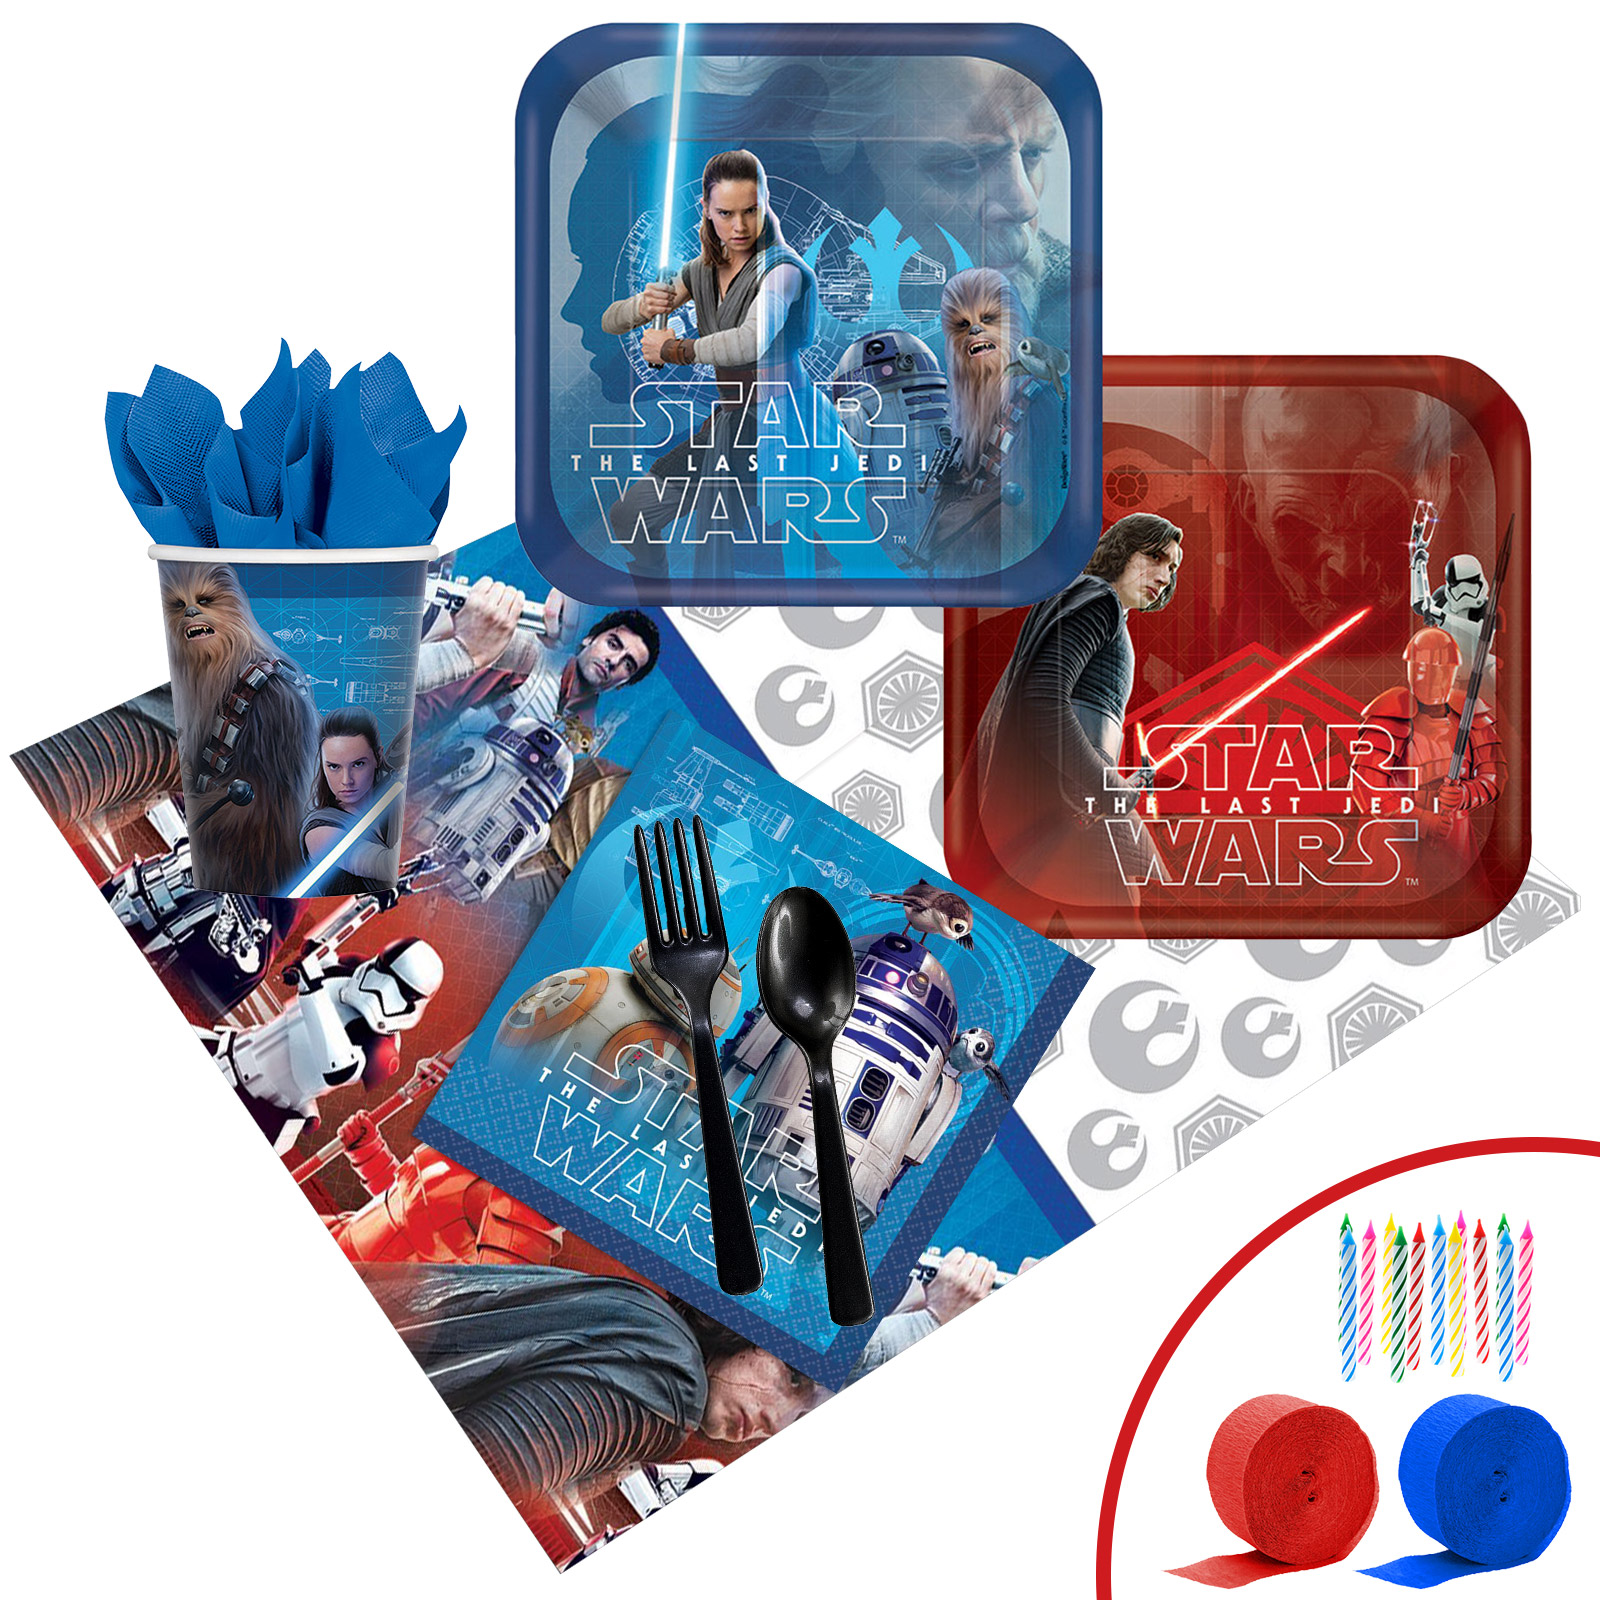 Star Wars Episode VIII: The Last Jedi Deluxe Party Tableware Kit (Serves 8)